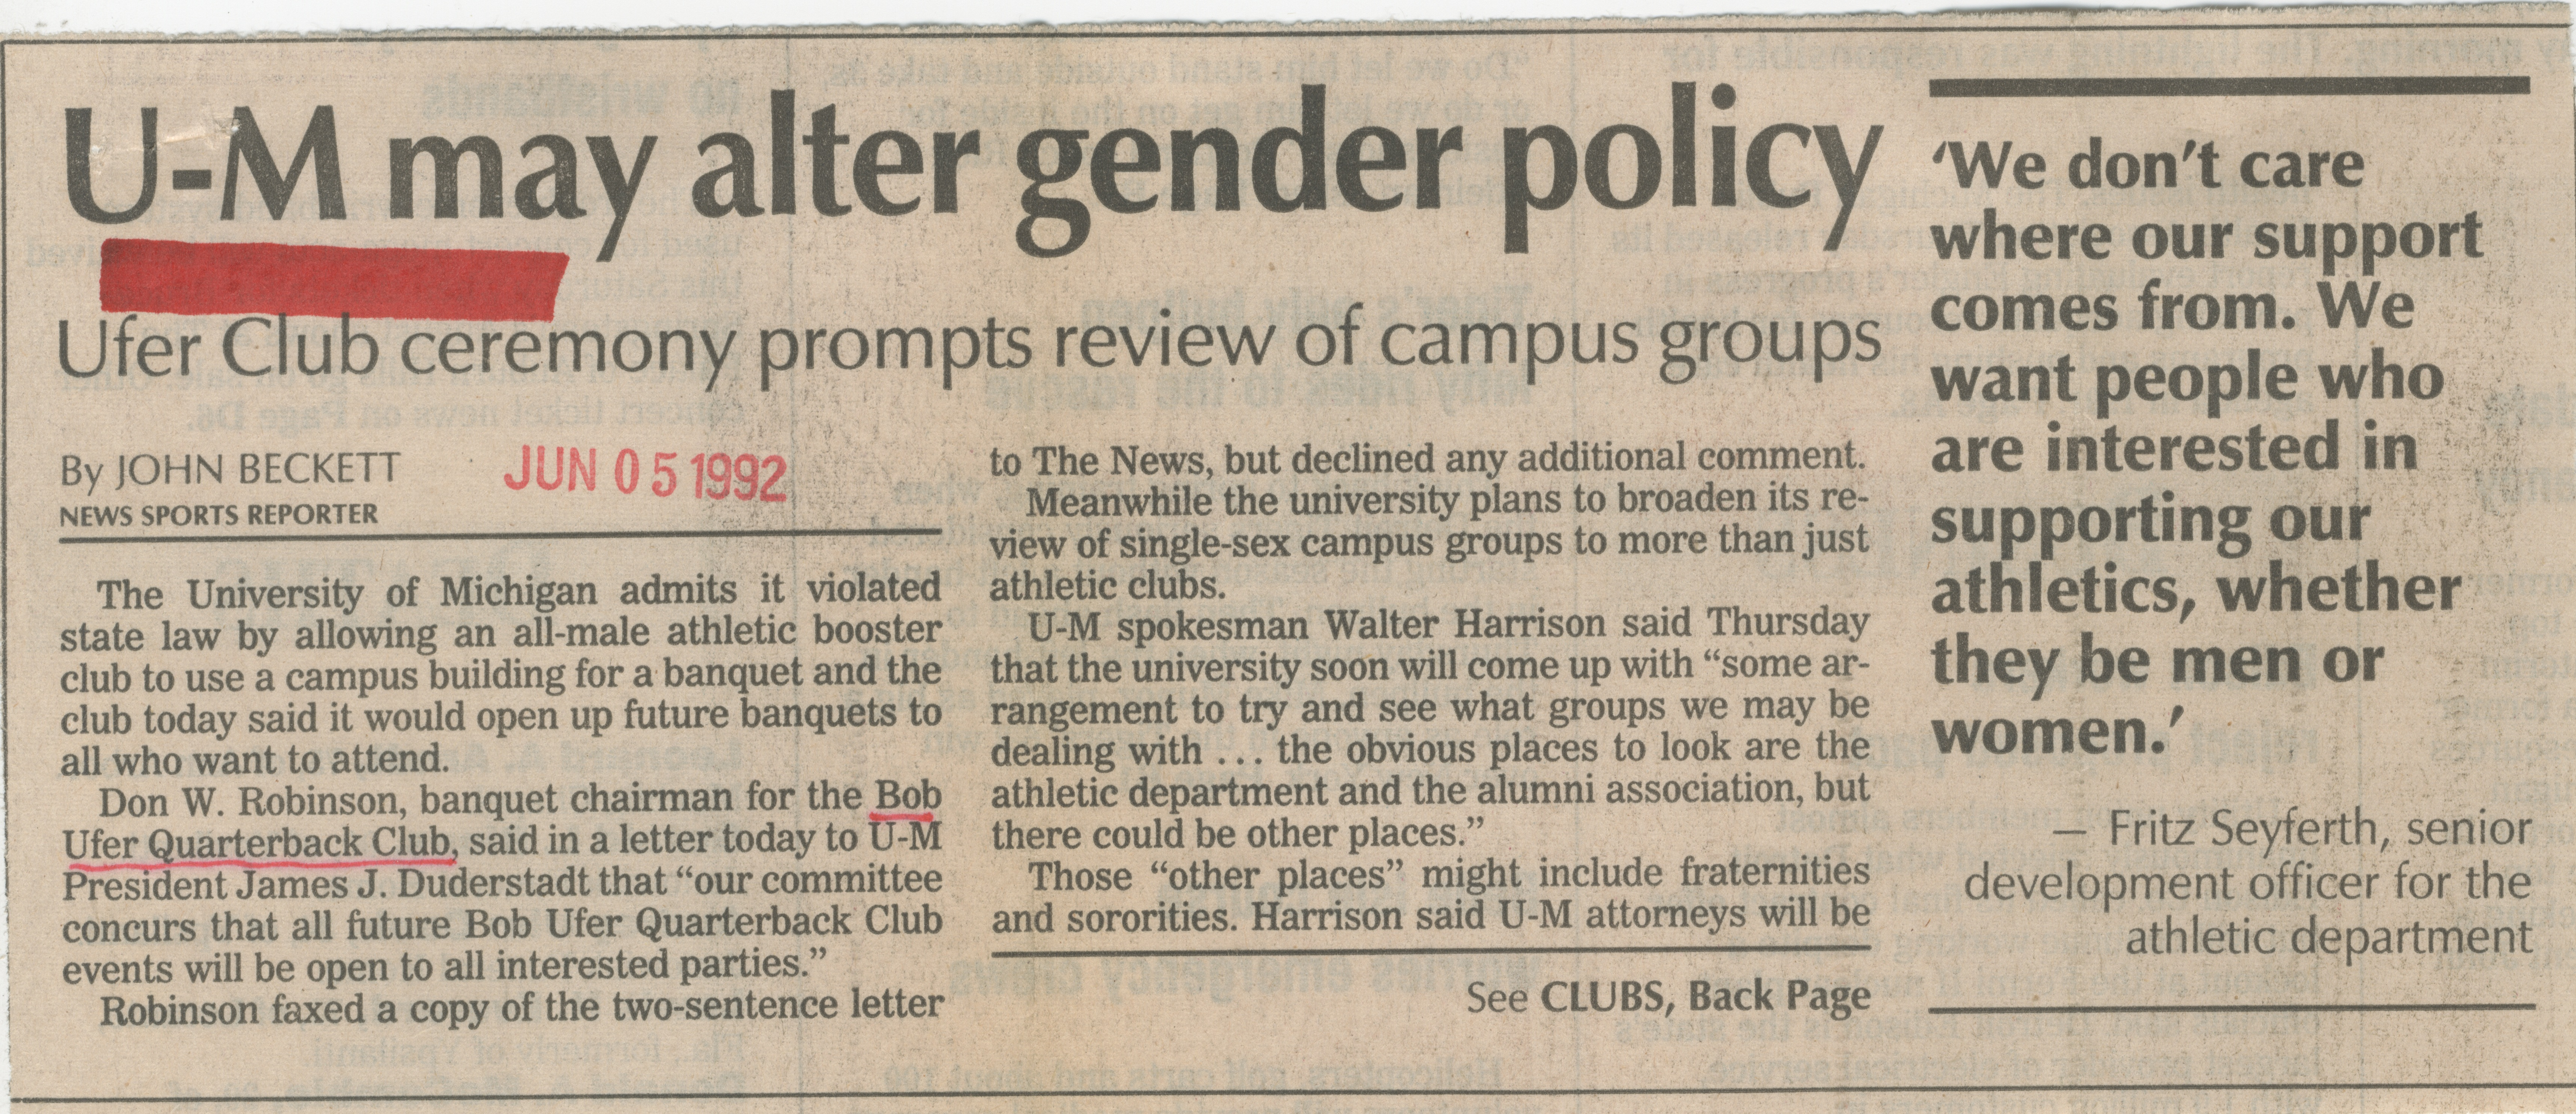 U-M May Alter Gender Policy image